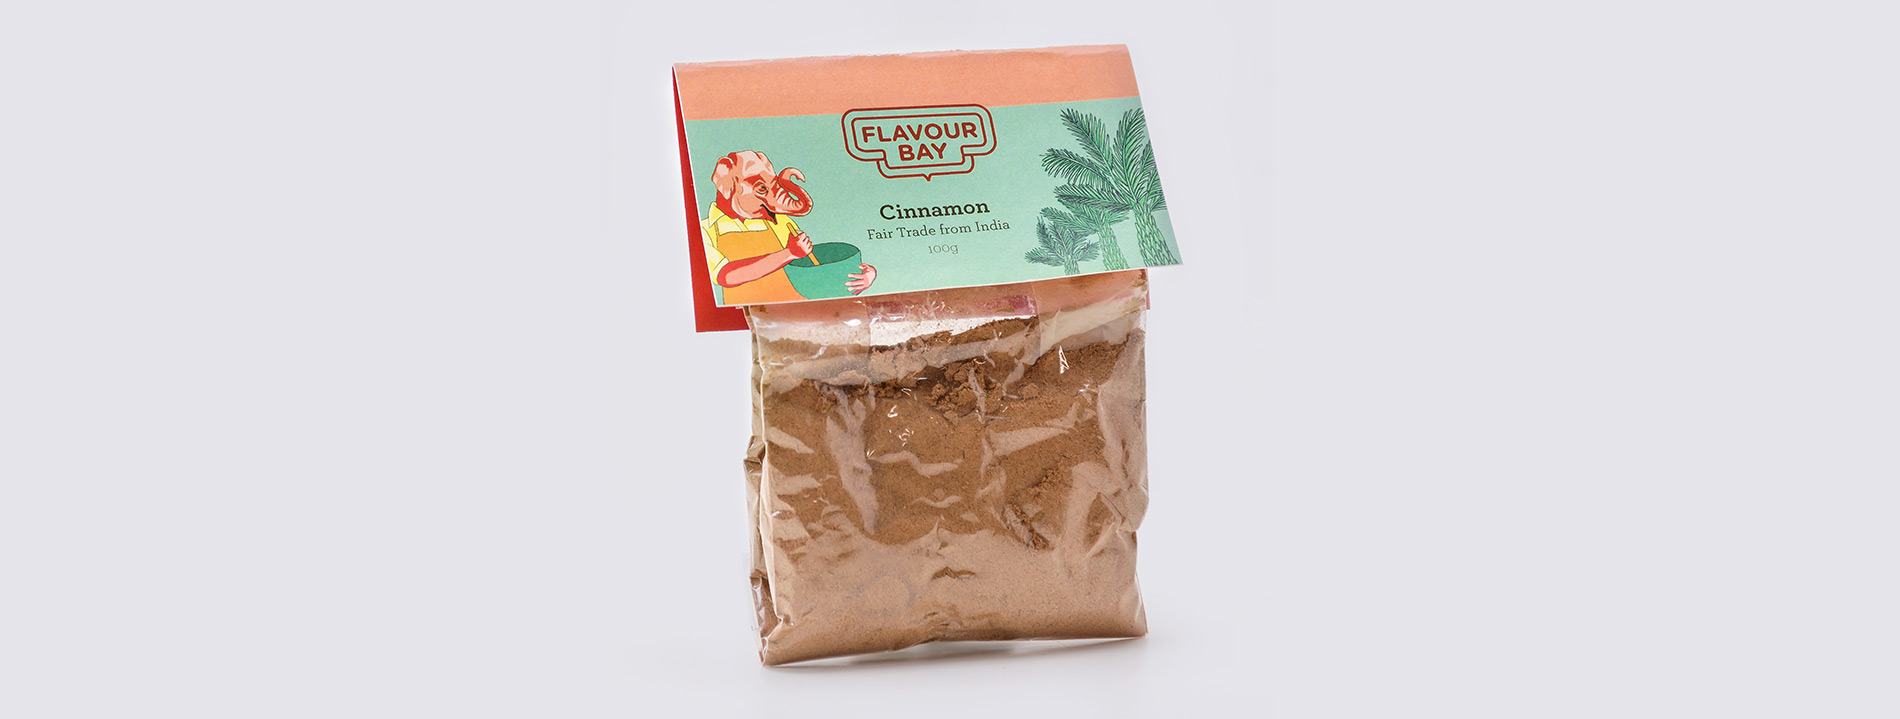 Flavour-Bay-Spice-Packaging-Cinammon-Illustration-and-Design-Refill-by-Fiona-Dunnett.jpg